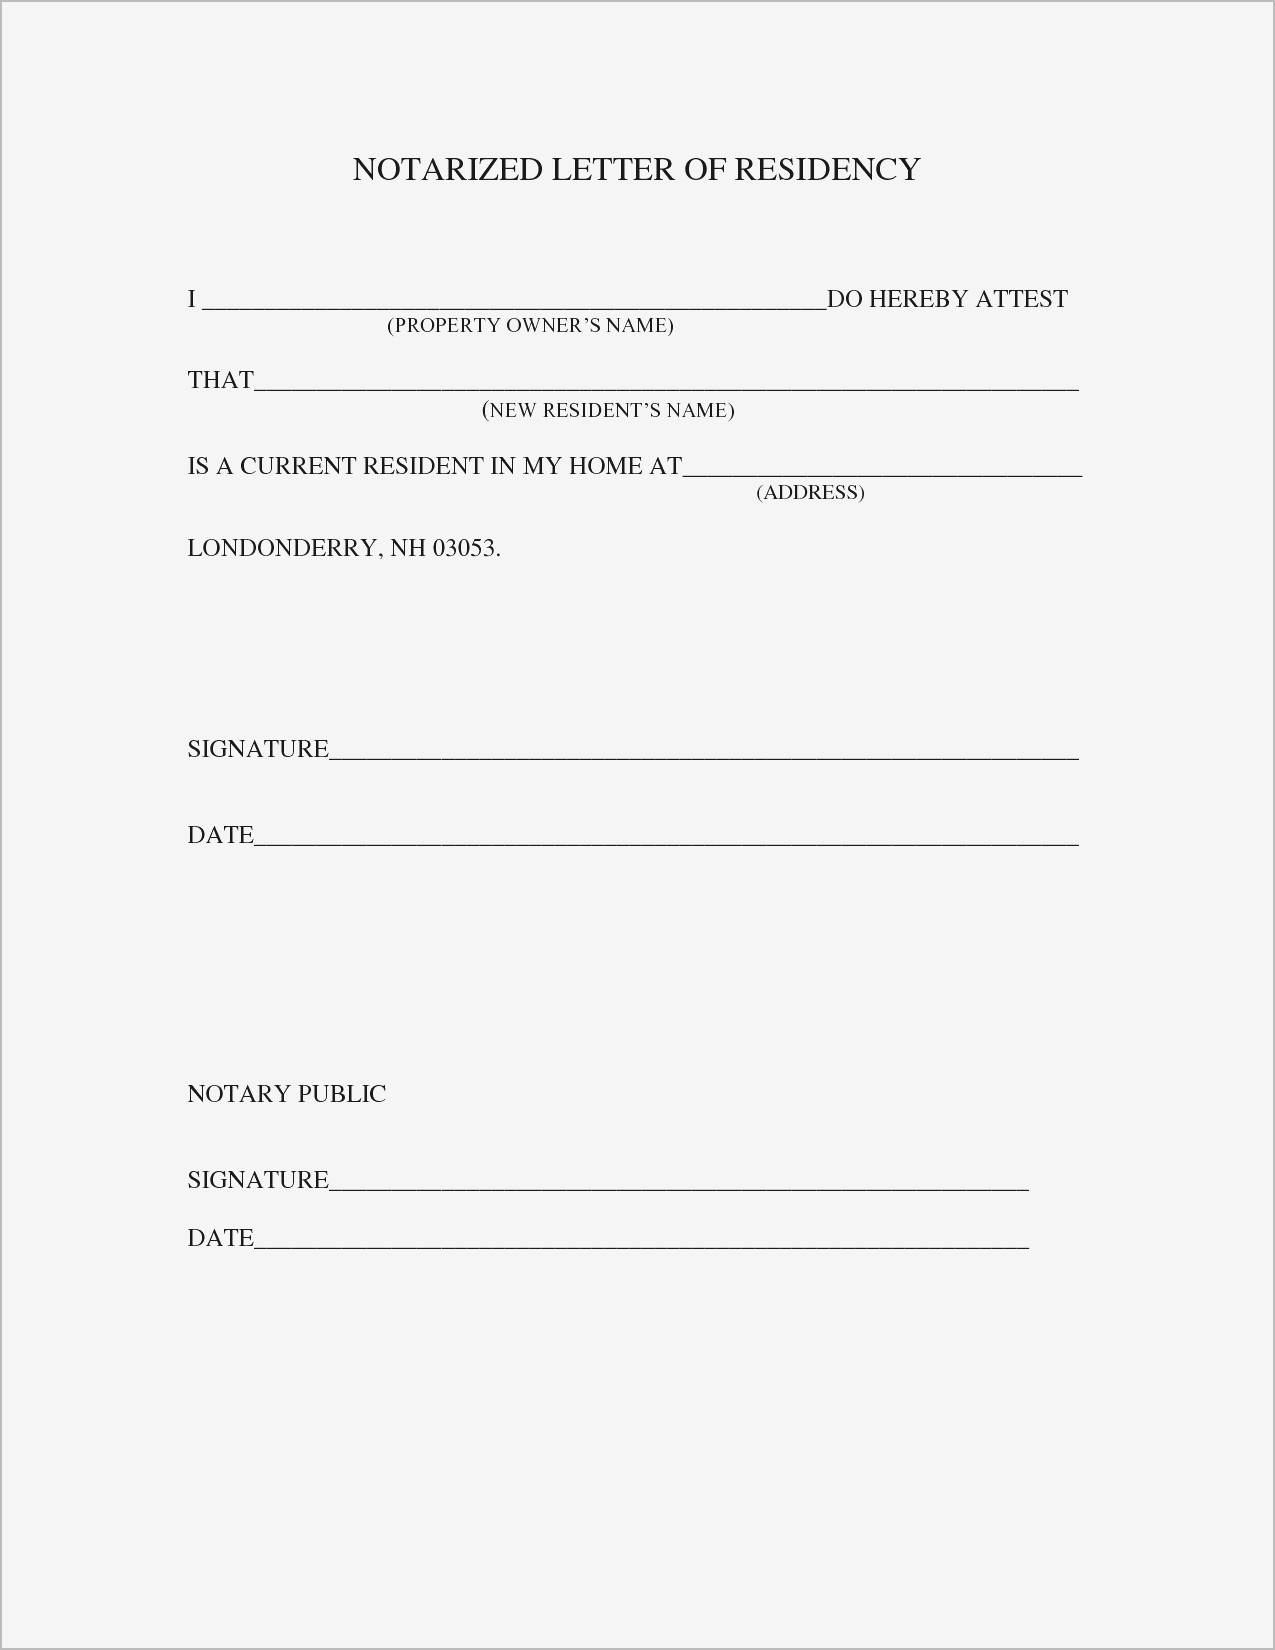 Proof Of Residency Letter Notarized Template - Proof Residency Letter Sample Best Printable Notarized Letter